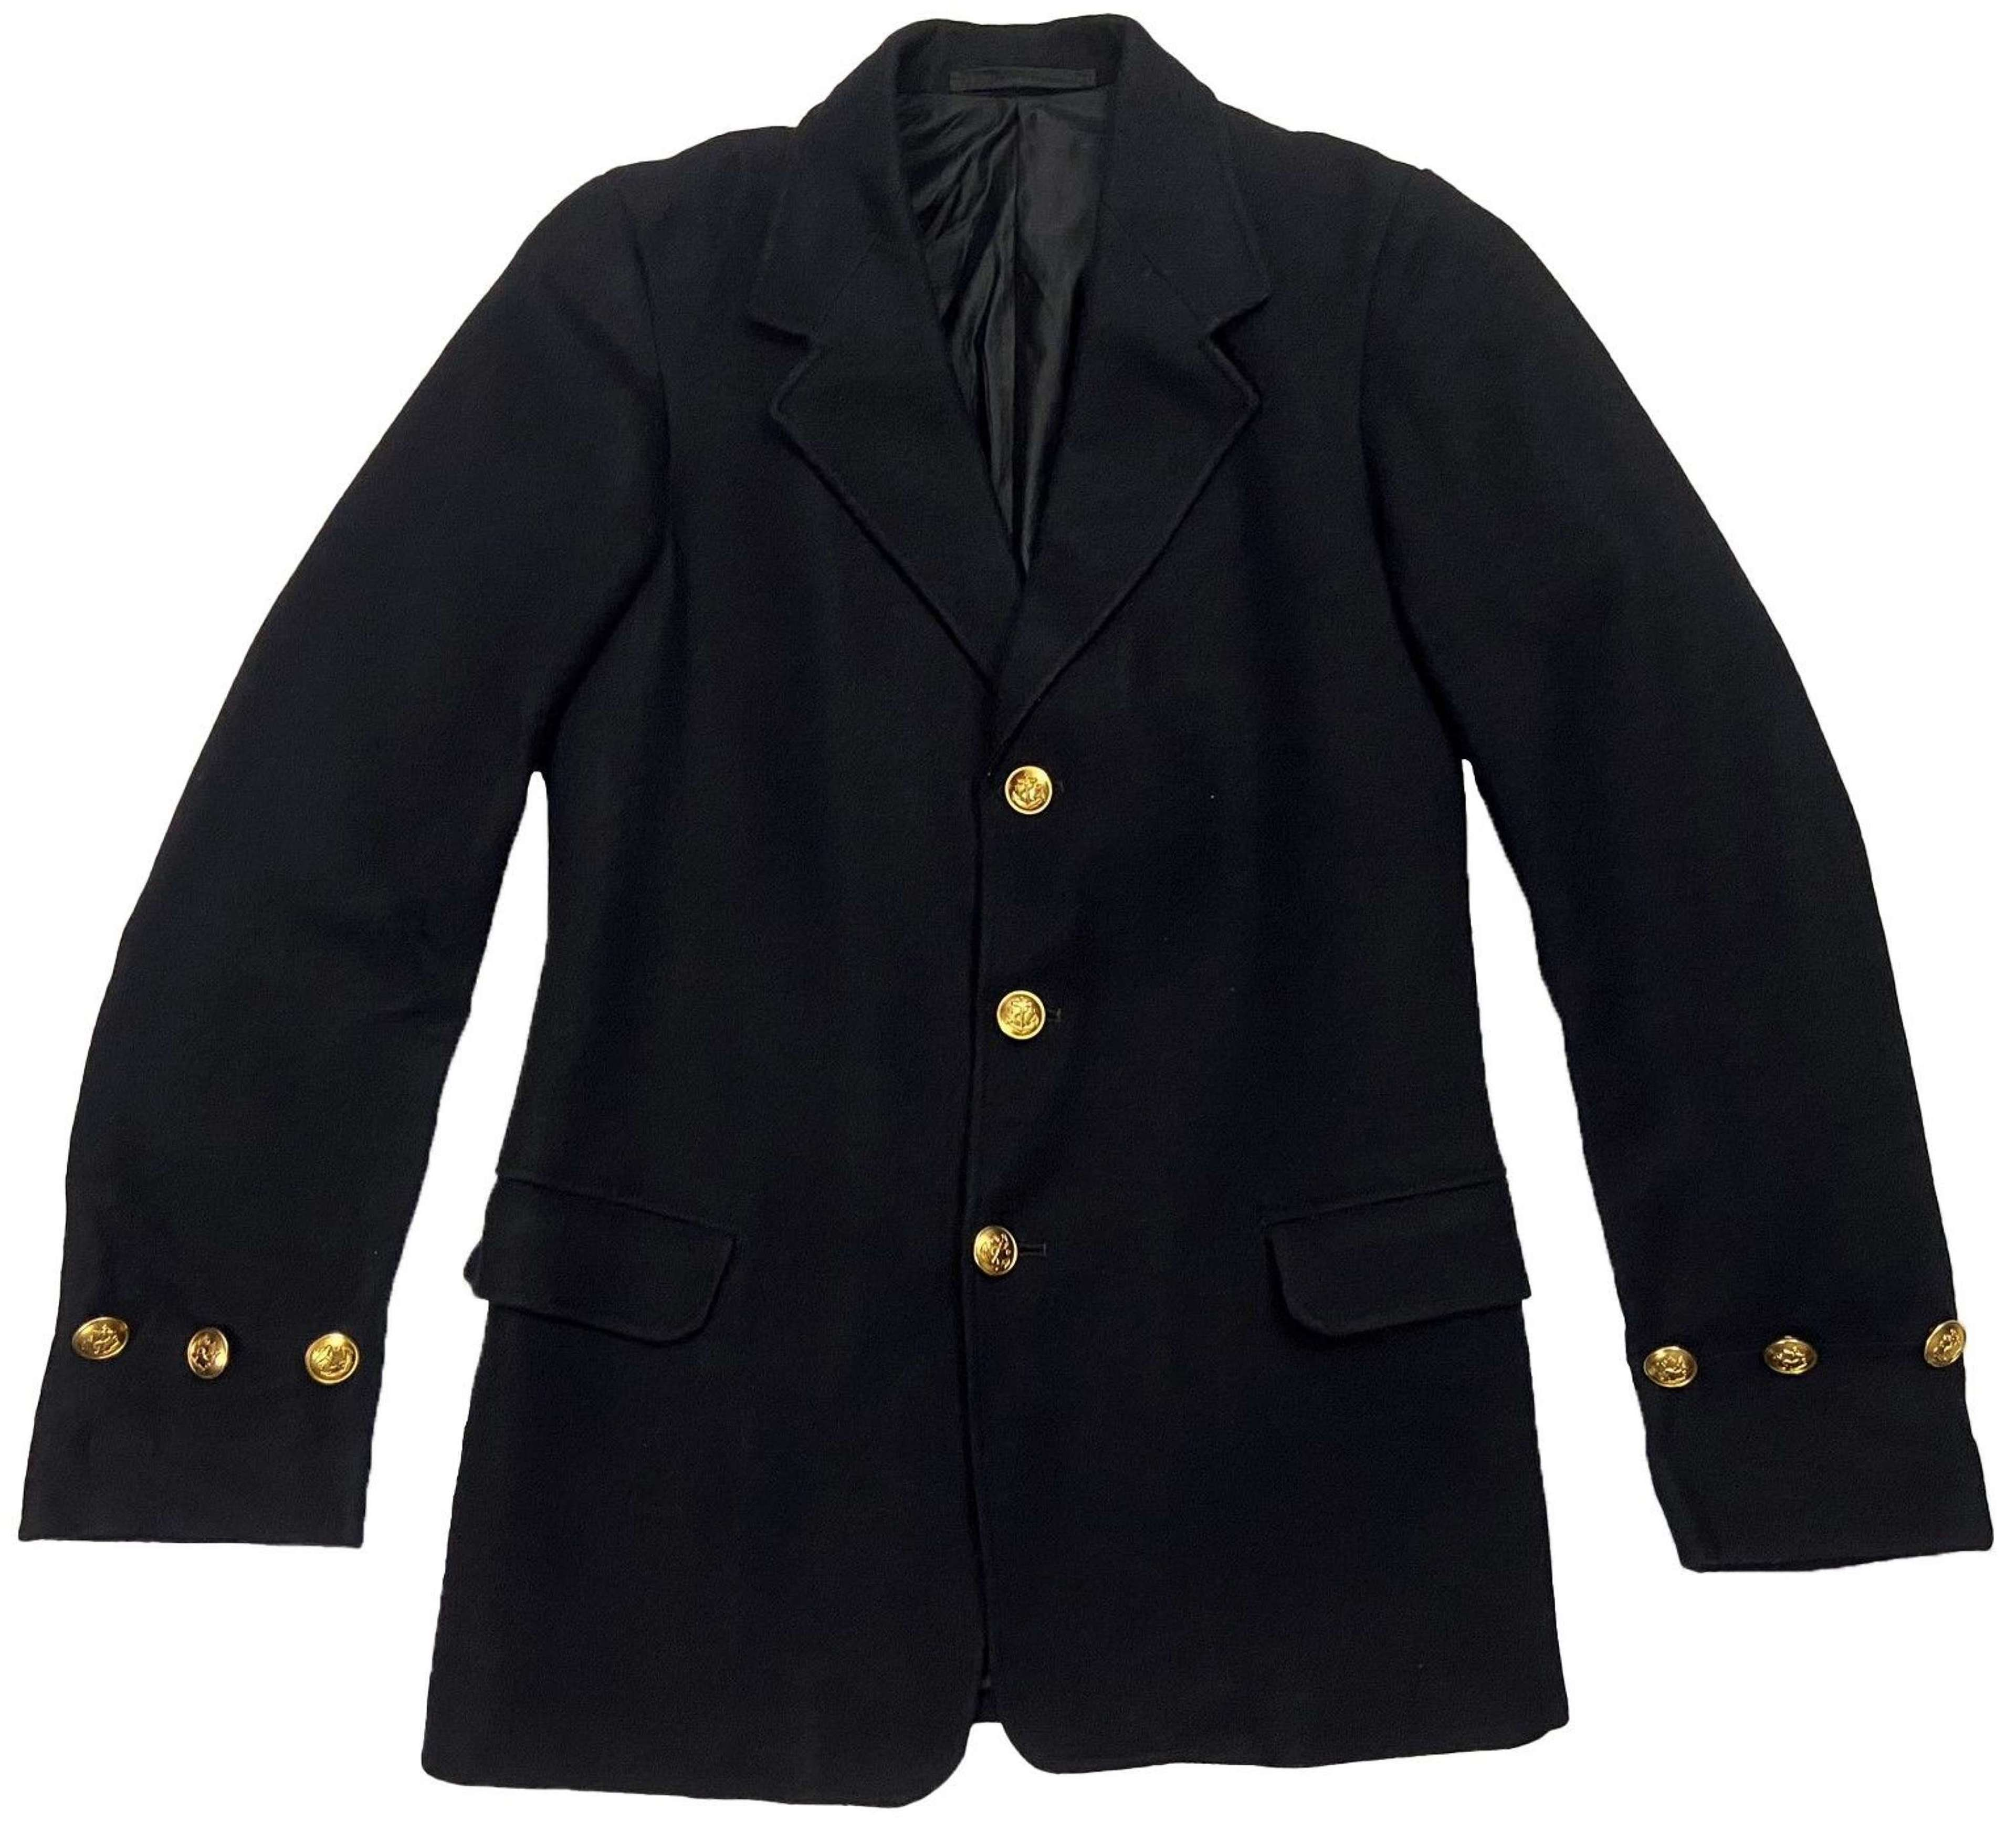 Original WW2 RN Chief Petty Officers Single Breasted Serge Jacket